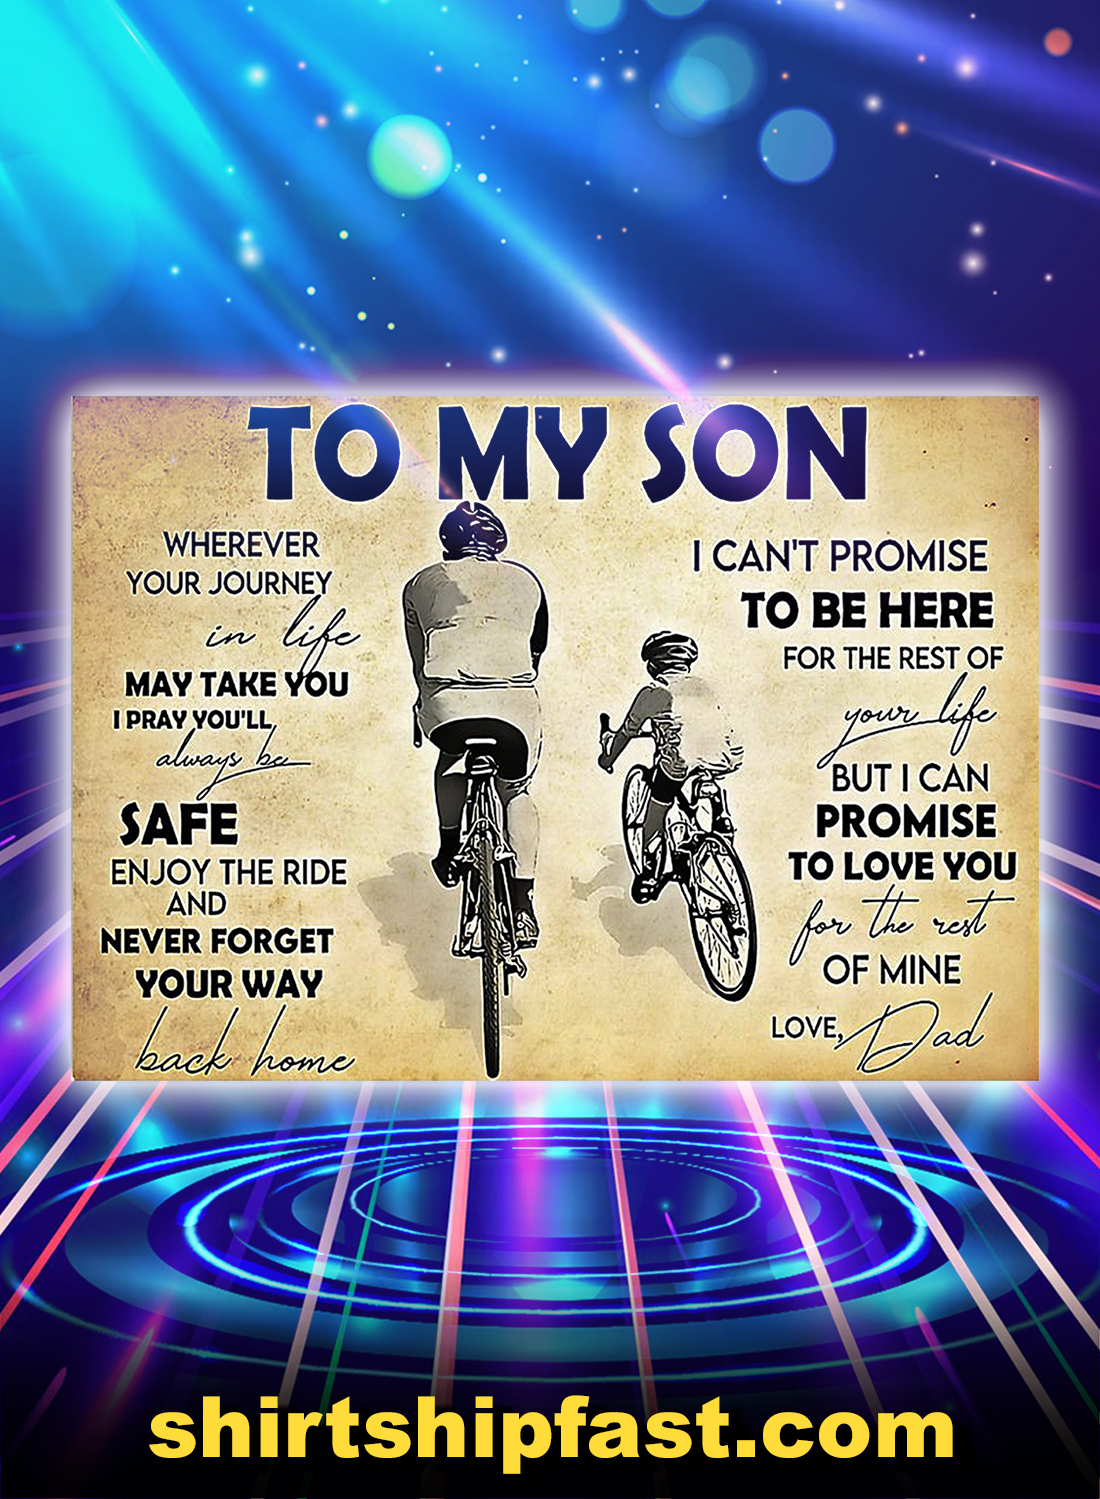 Cycling to my son dad poster - A4